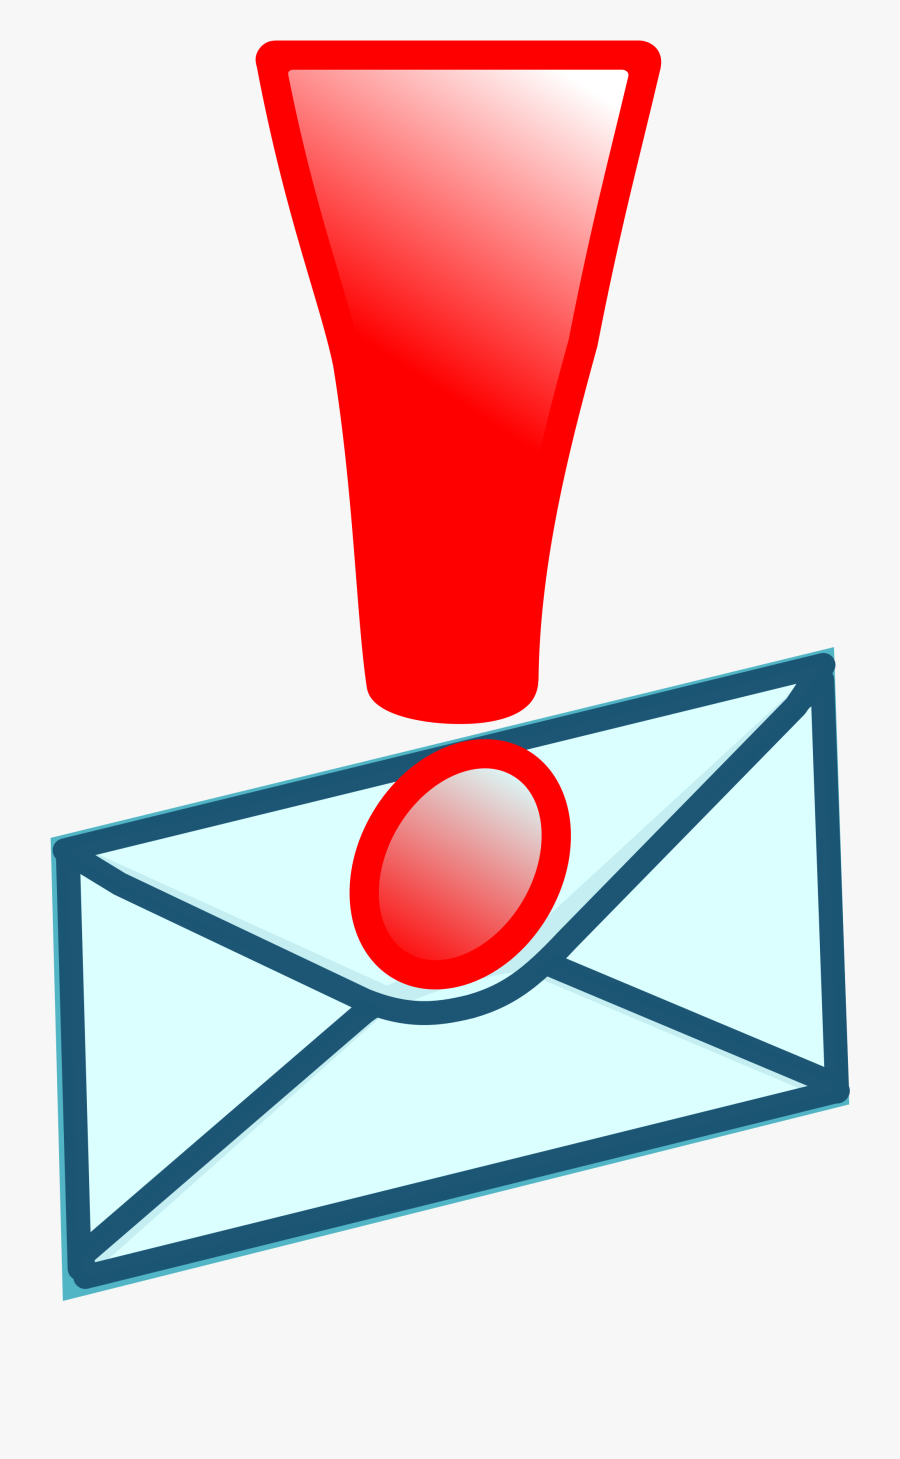 Red Exclamation Mark Png - Envelope, Transparent Clipart